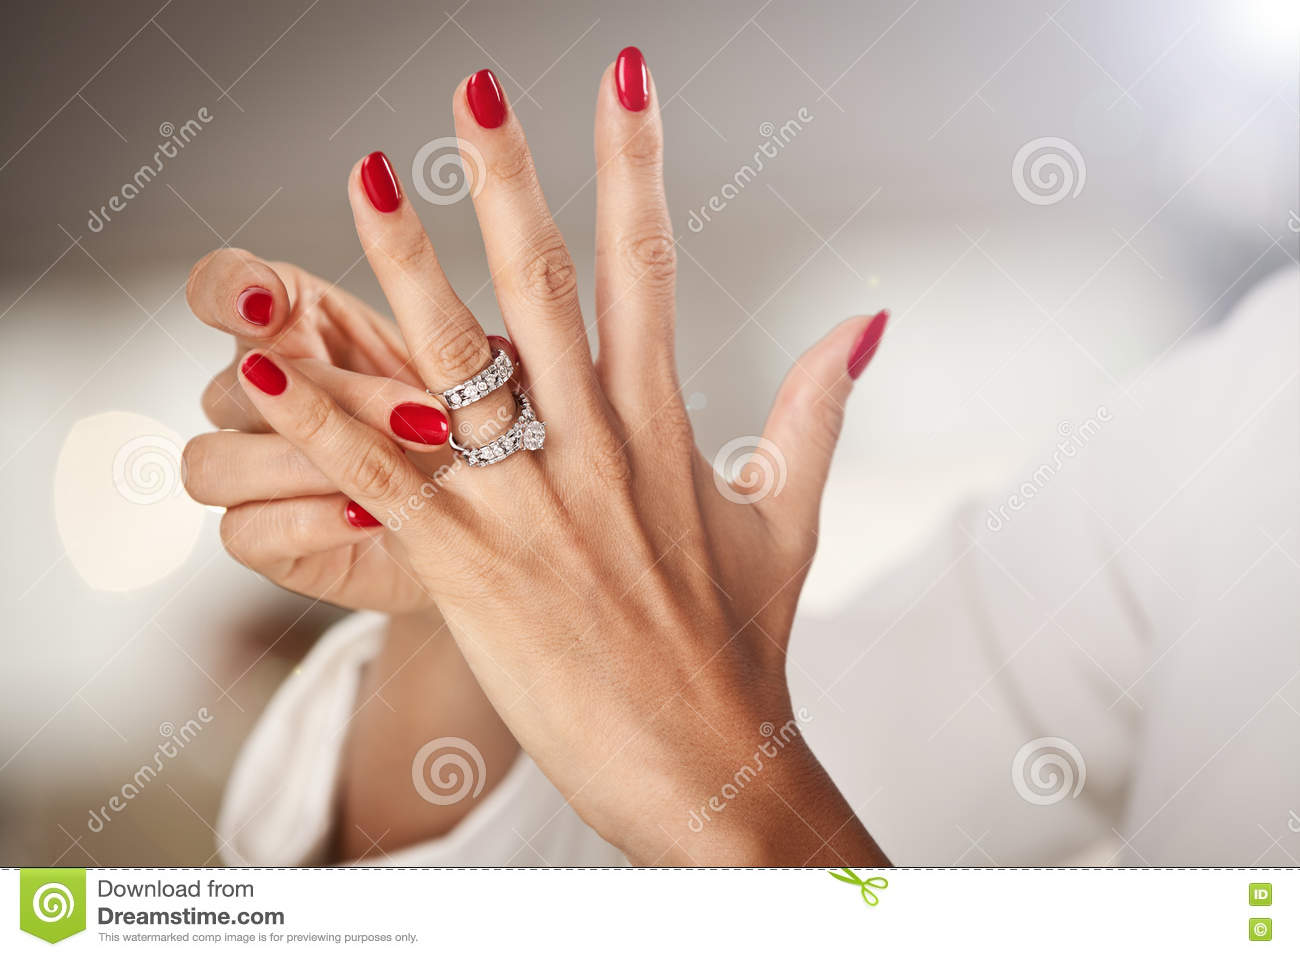 Beautiful Female Hands With Red Nails Stock Image - Image of ...